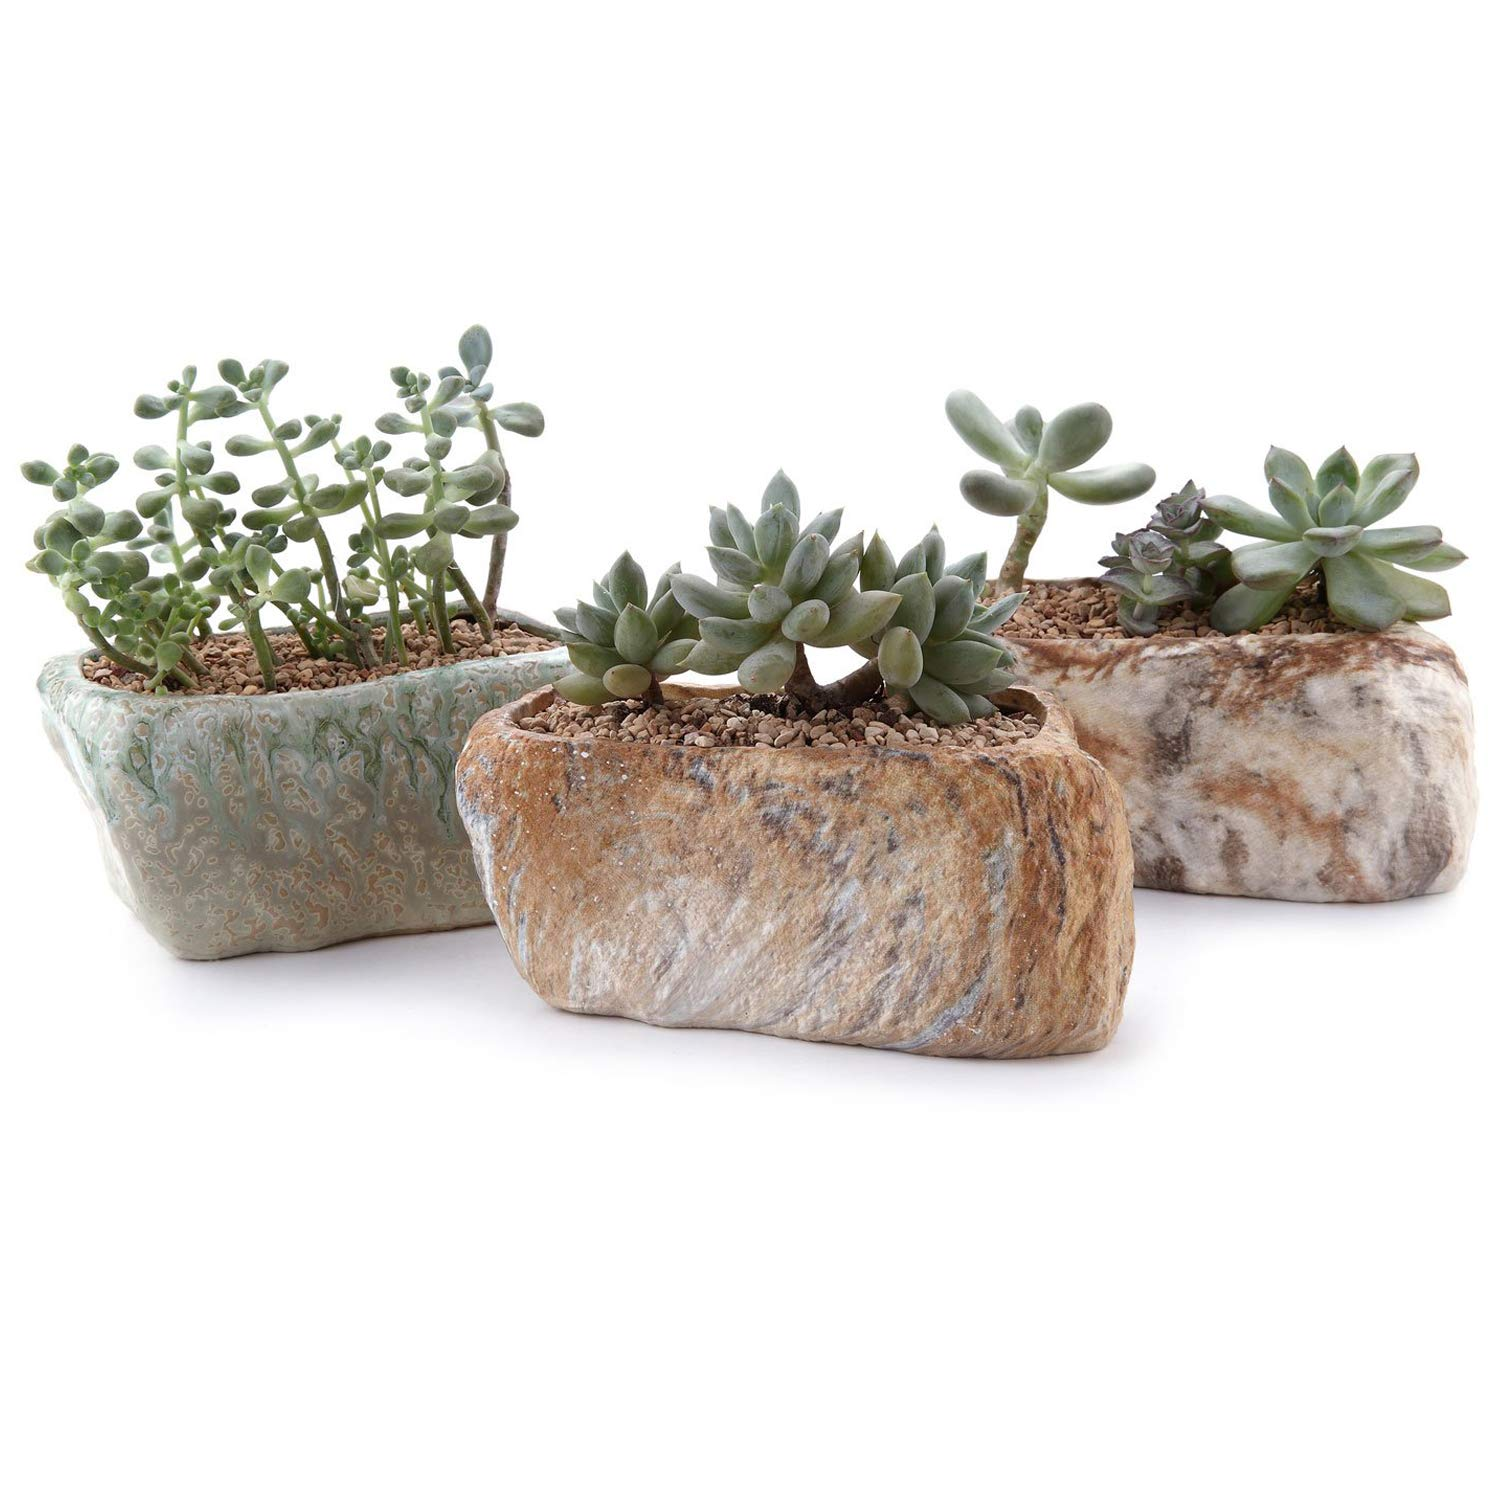 T4U 5.25 Inch Distinctive Stone Shape Sucuulent Cactus Plant Pots Flower Pots Planters Containers Window Boxes with Small Hole Set of 3